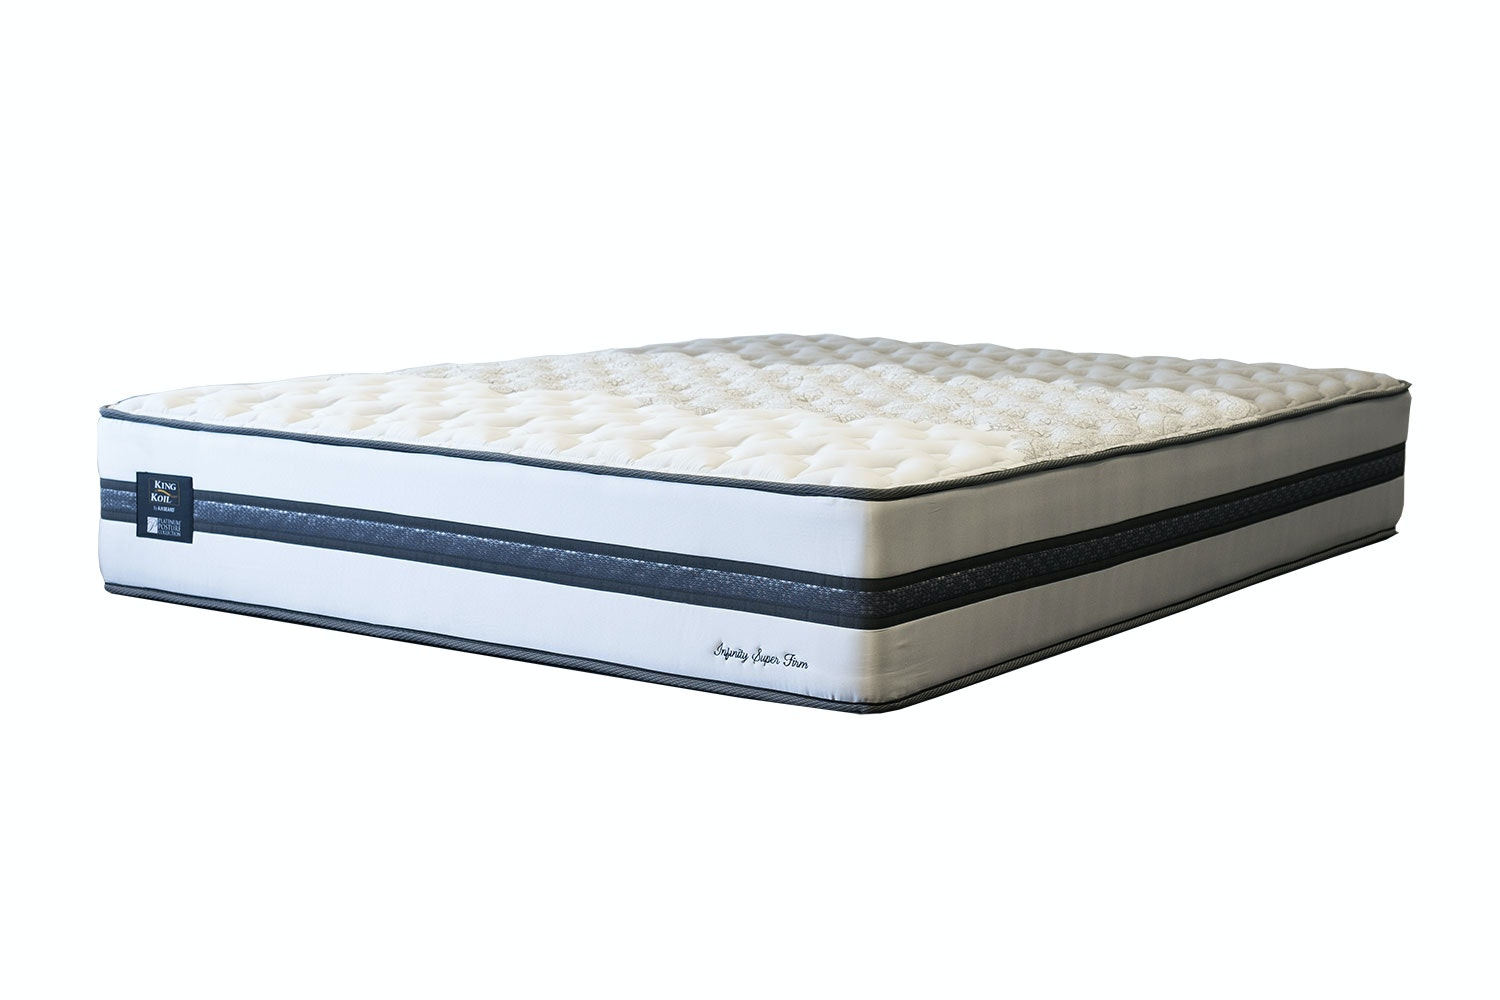 Infinity Super Firm Long Single Mattress by King Koil